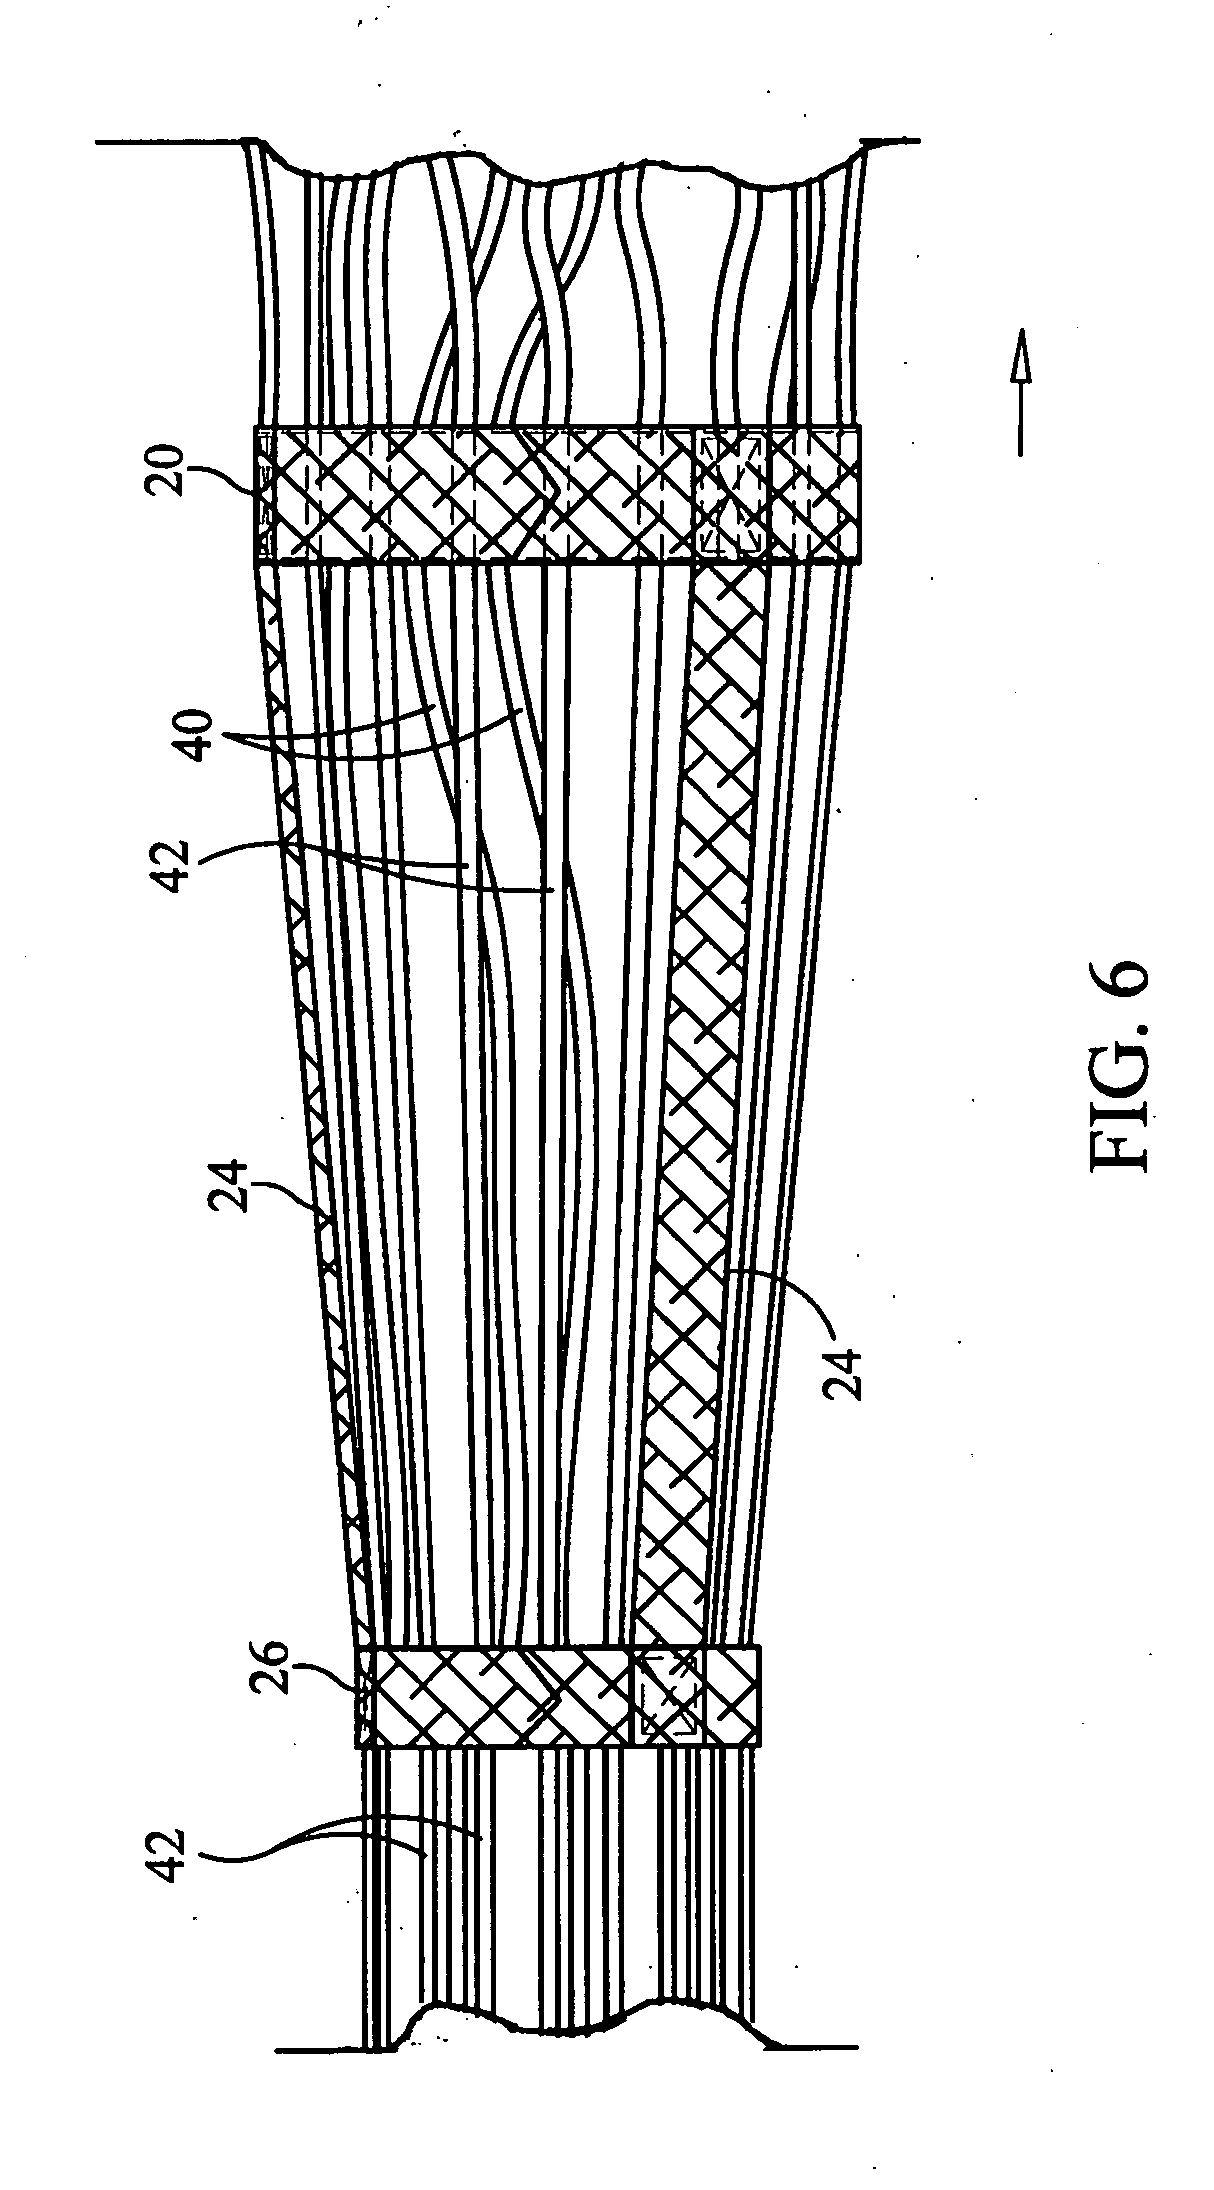 patent us20050194057 - cable  wire dressing tool